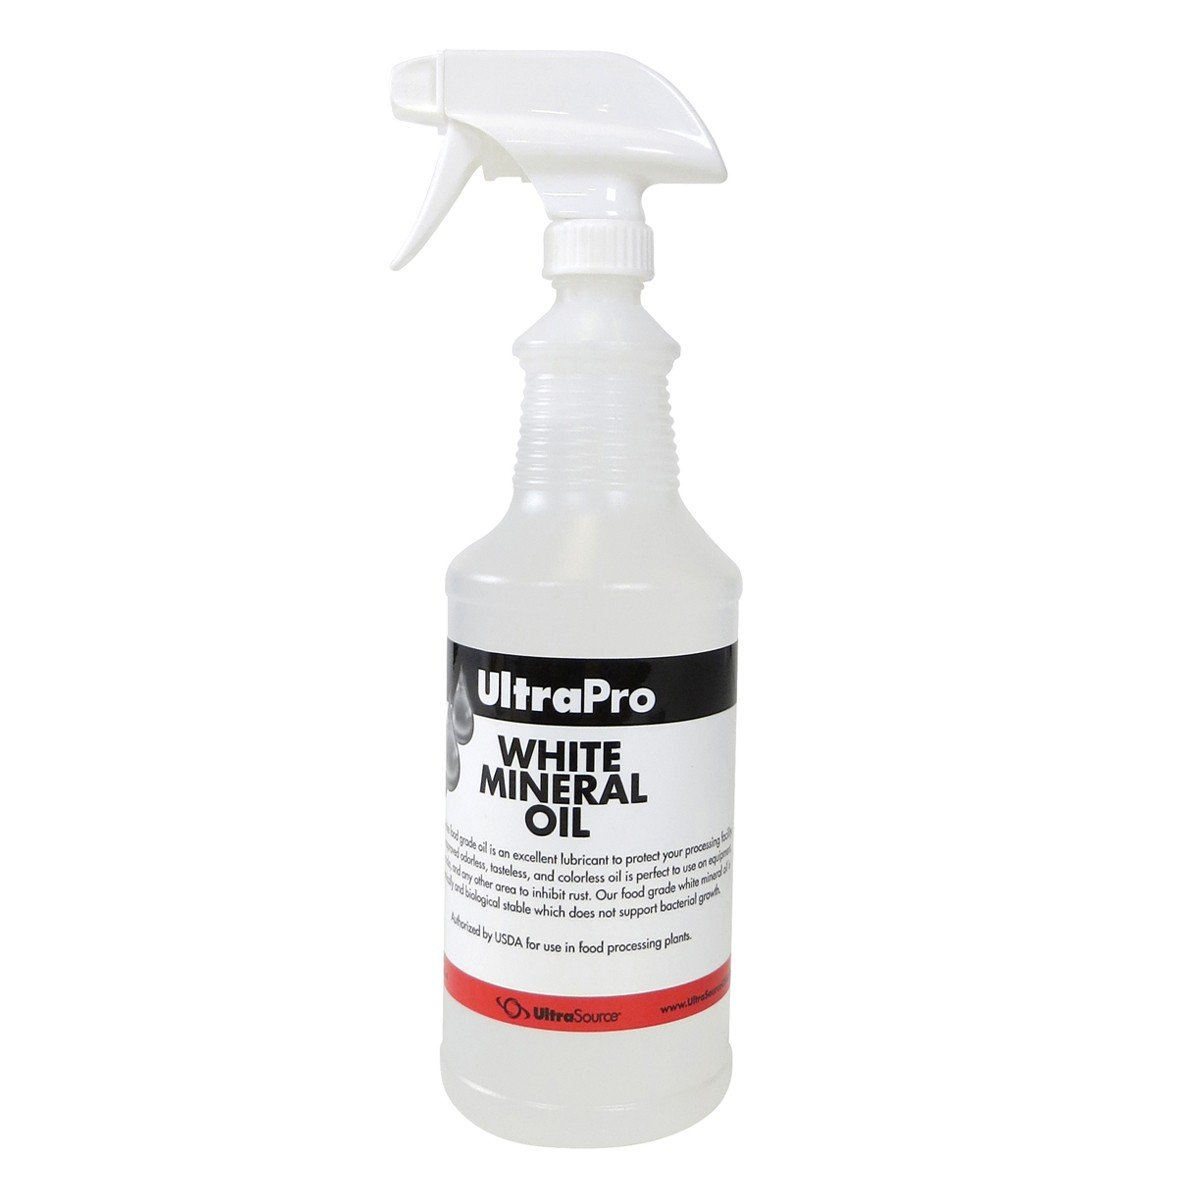 32 oz. Spray Bottle - Food Grade Mineral Oil for Stainless Steel, Cutting Boards and Butcher Blocks, NSF